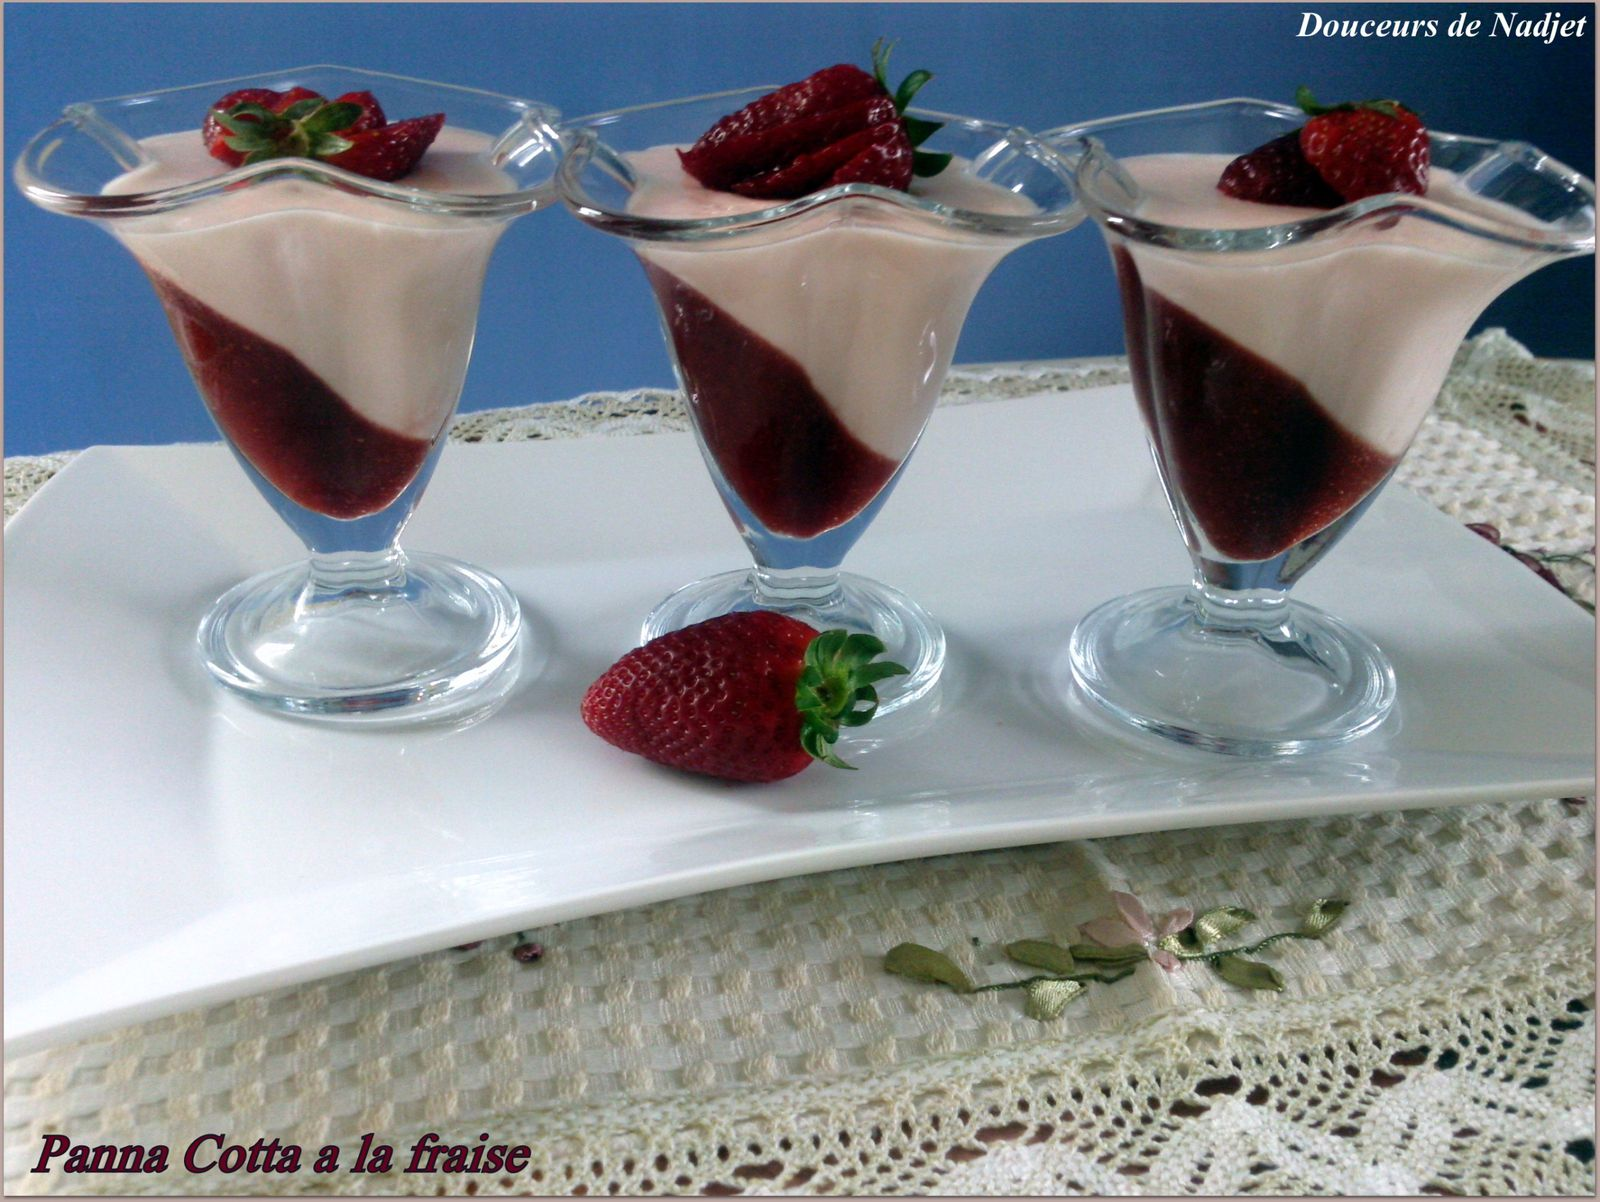 panna cotta aux fraises blogs de cuisine. Black Bedroom Furniture Sets. Home Design Ideas